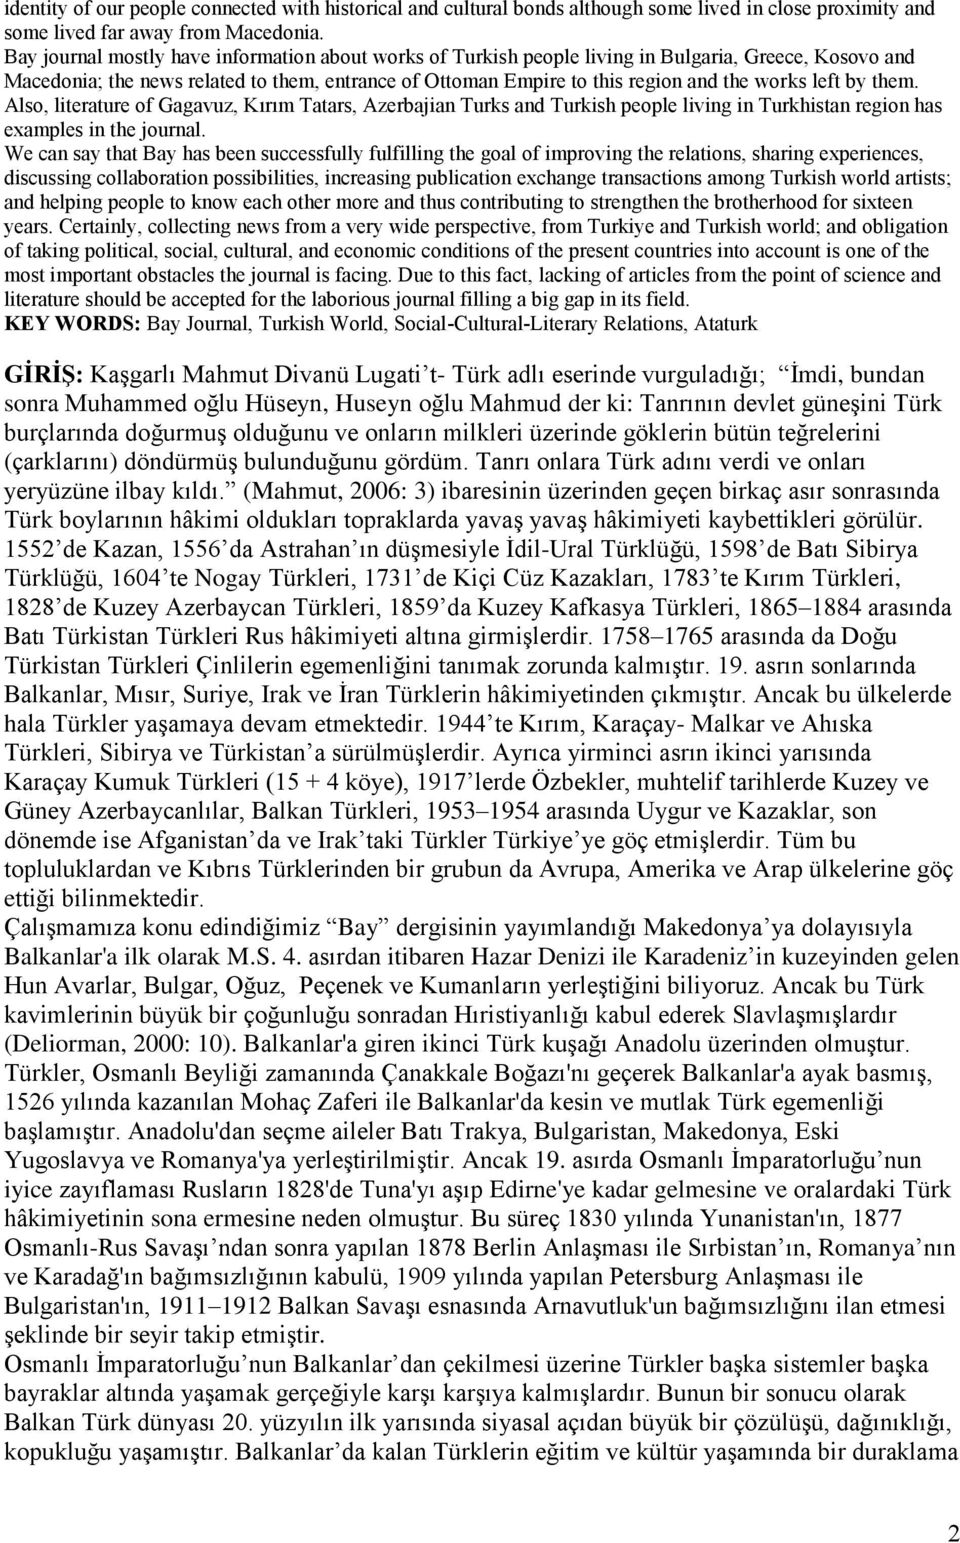 left by them. Also, literature of Gagavuz, Kırım Tatars, Azerbajian Turks and Turkish people living in Turkhistan region has examples in the journal.